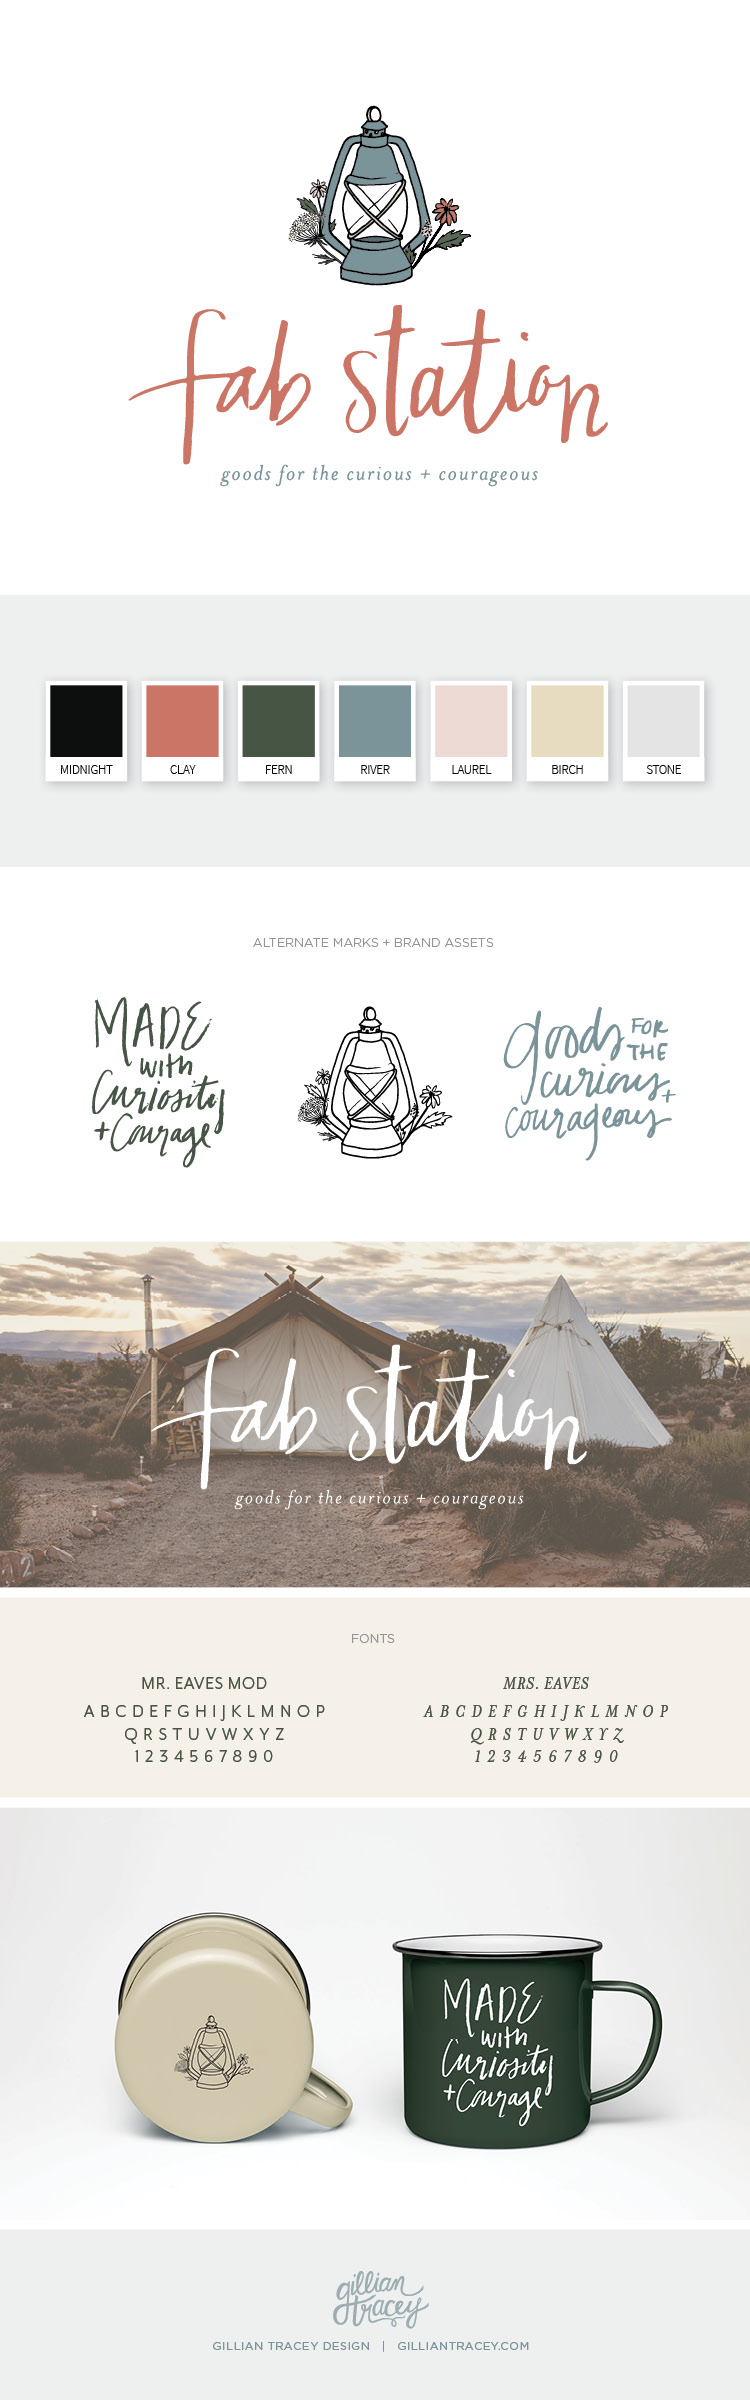 Fab Station Custom Brand and Logo Design by Gillian Tracey Design